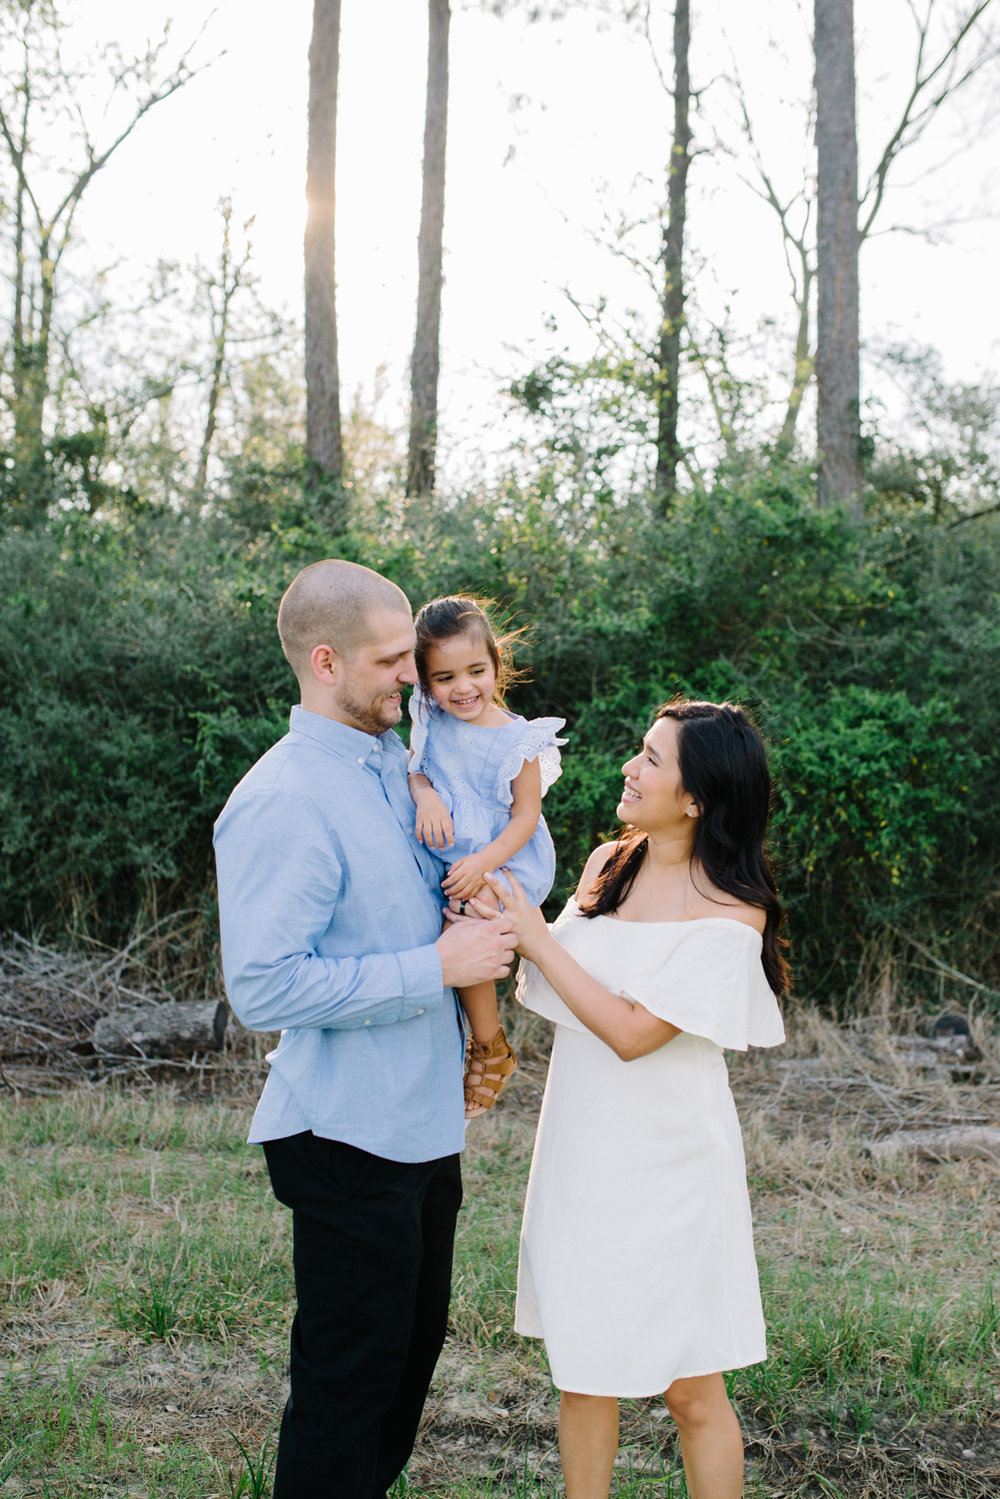 familysession-houstonphotographer-houstonfamilyphotographer-naturallight-familysession-22.jpg